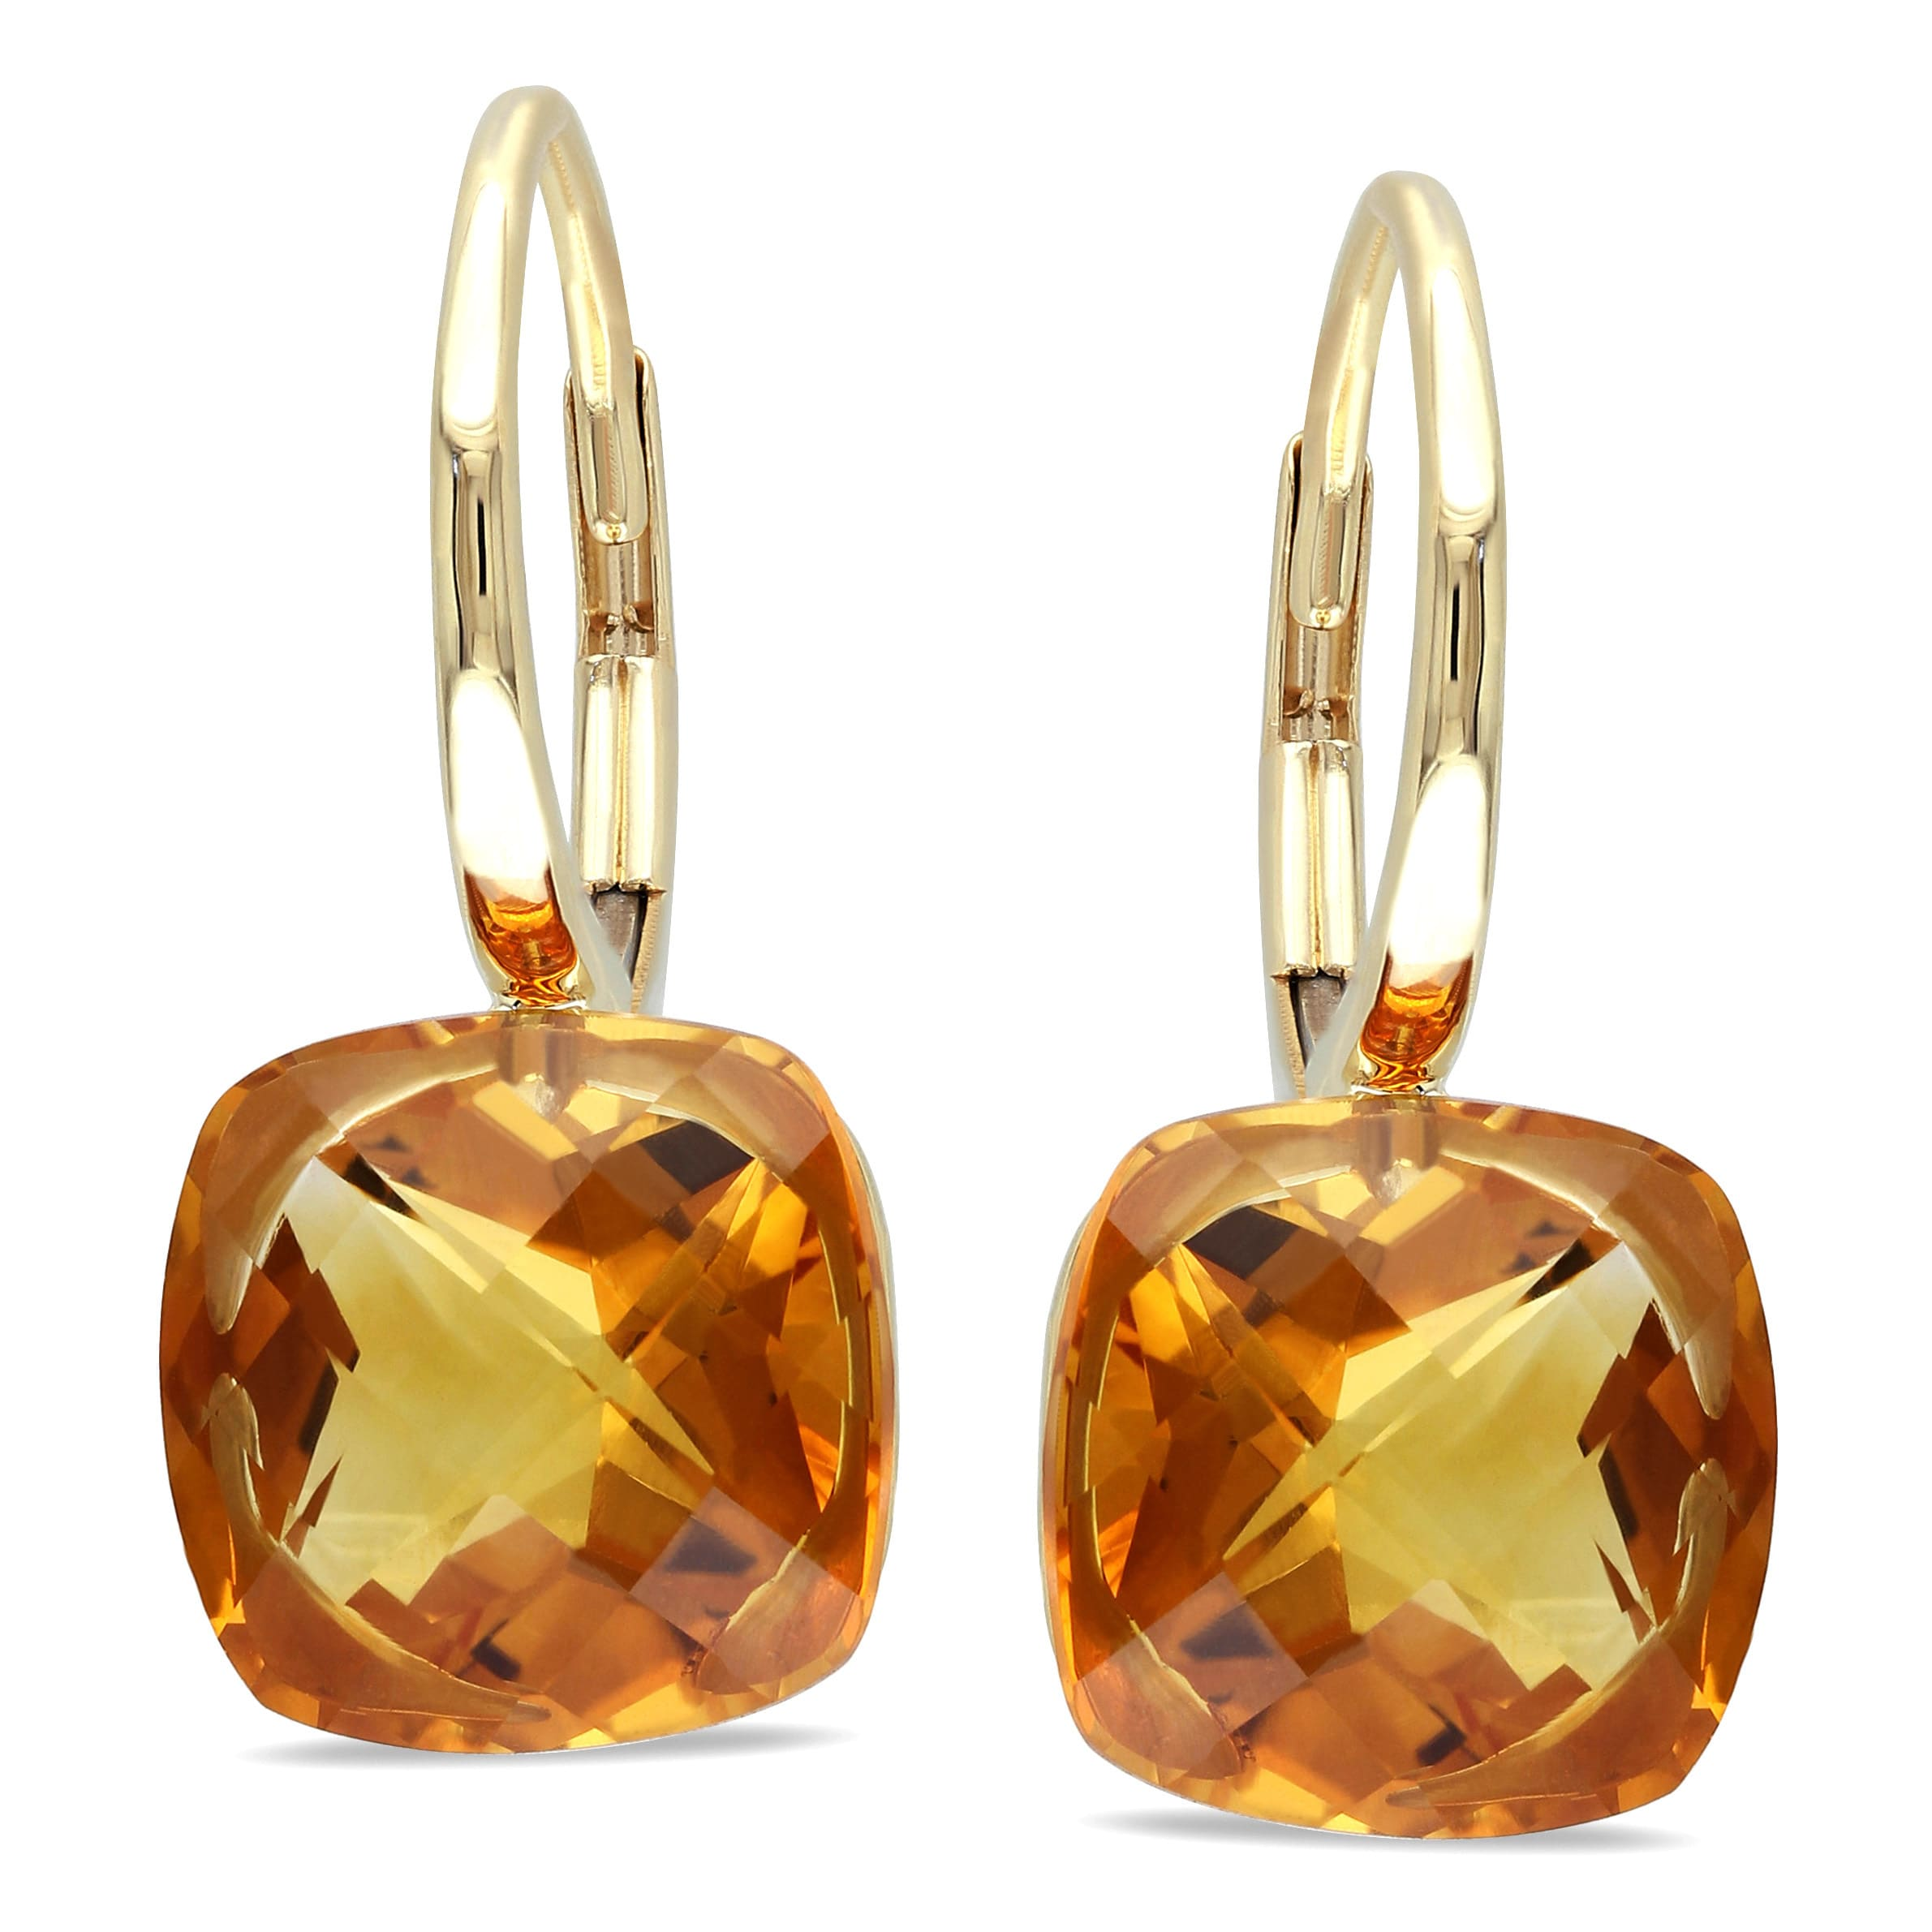 Miadora 14k Yellow Gold Citrine Earrings On Free Shipping Today 8409619